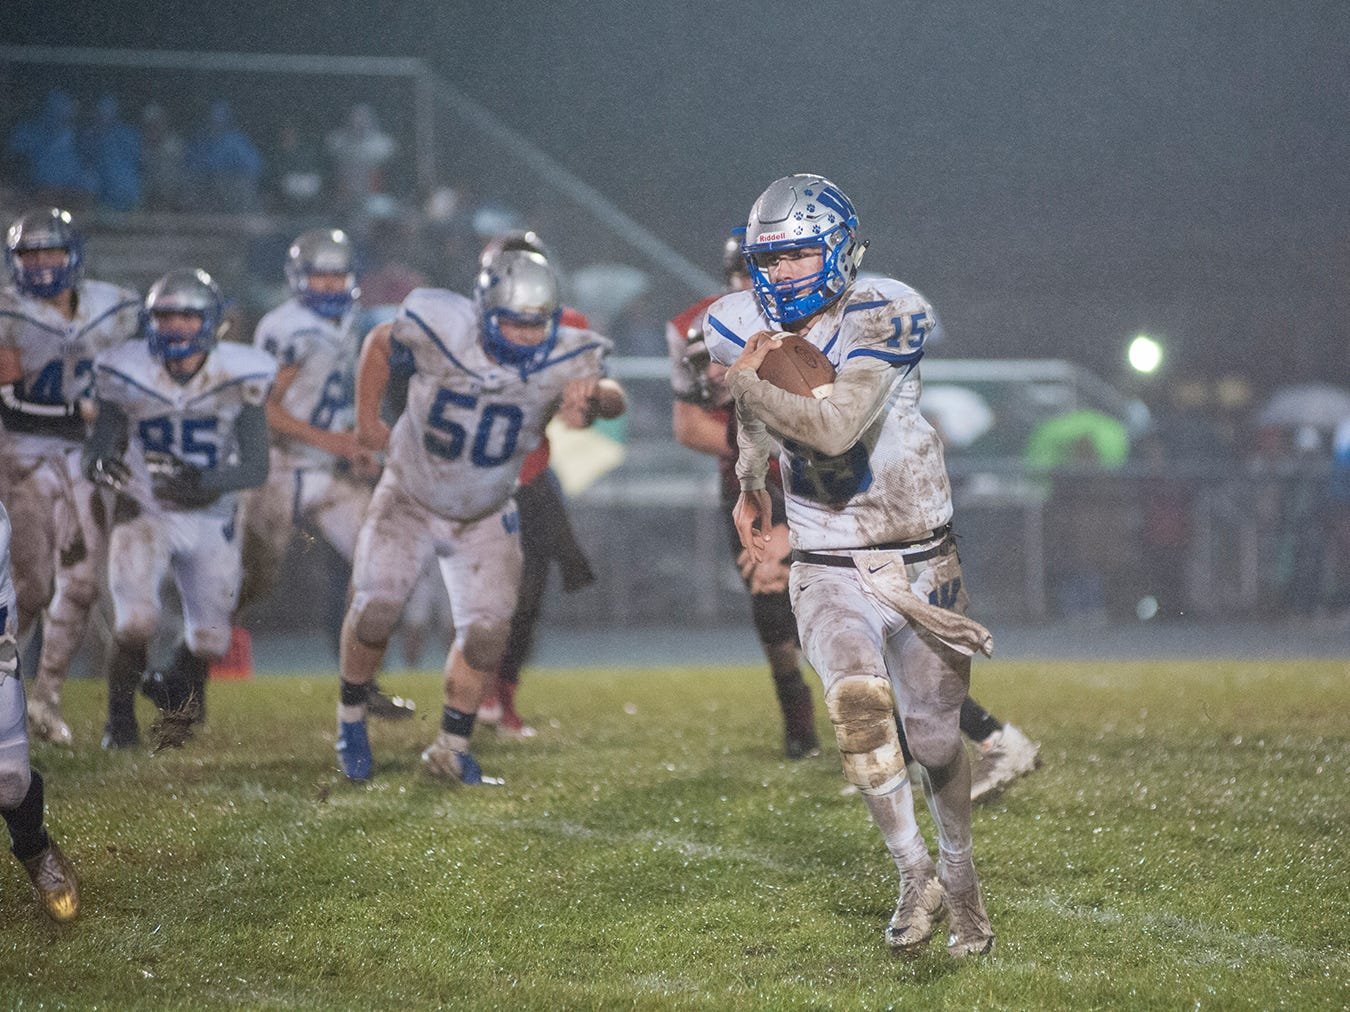 Wynford's Dustin Brady rushes the ball.